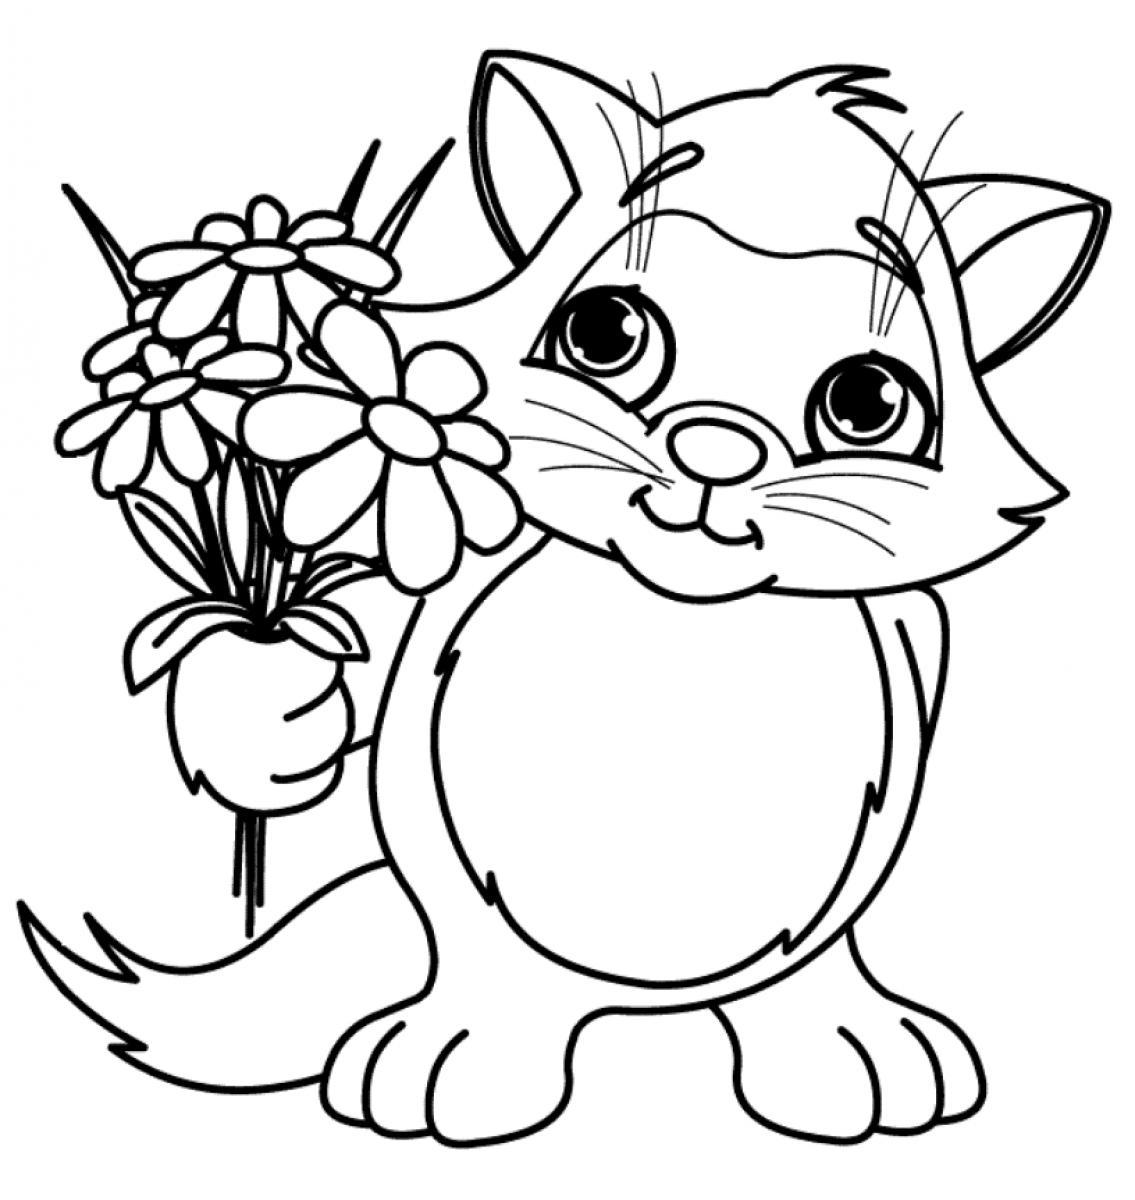 free printable coloring pages of flowers free printable flower coloring pages for kids cool2bkids flowers pages free printable coloring of